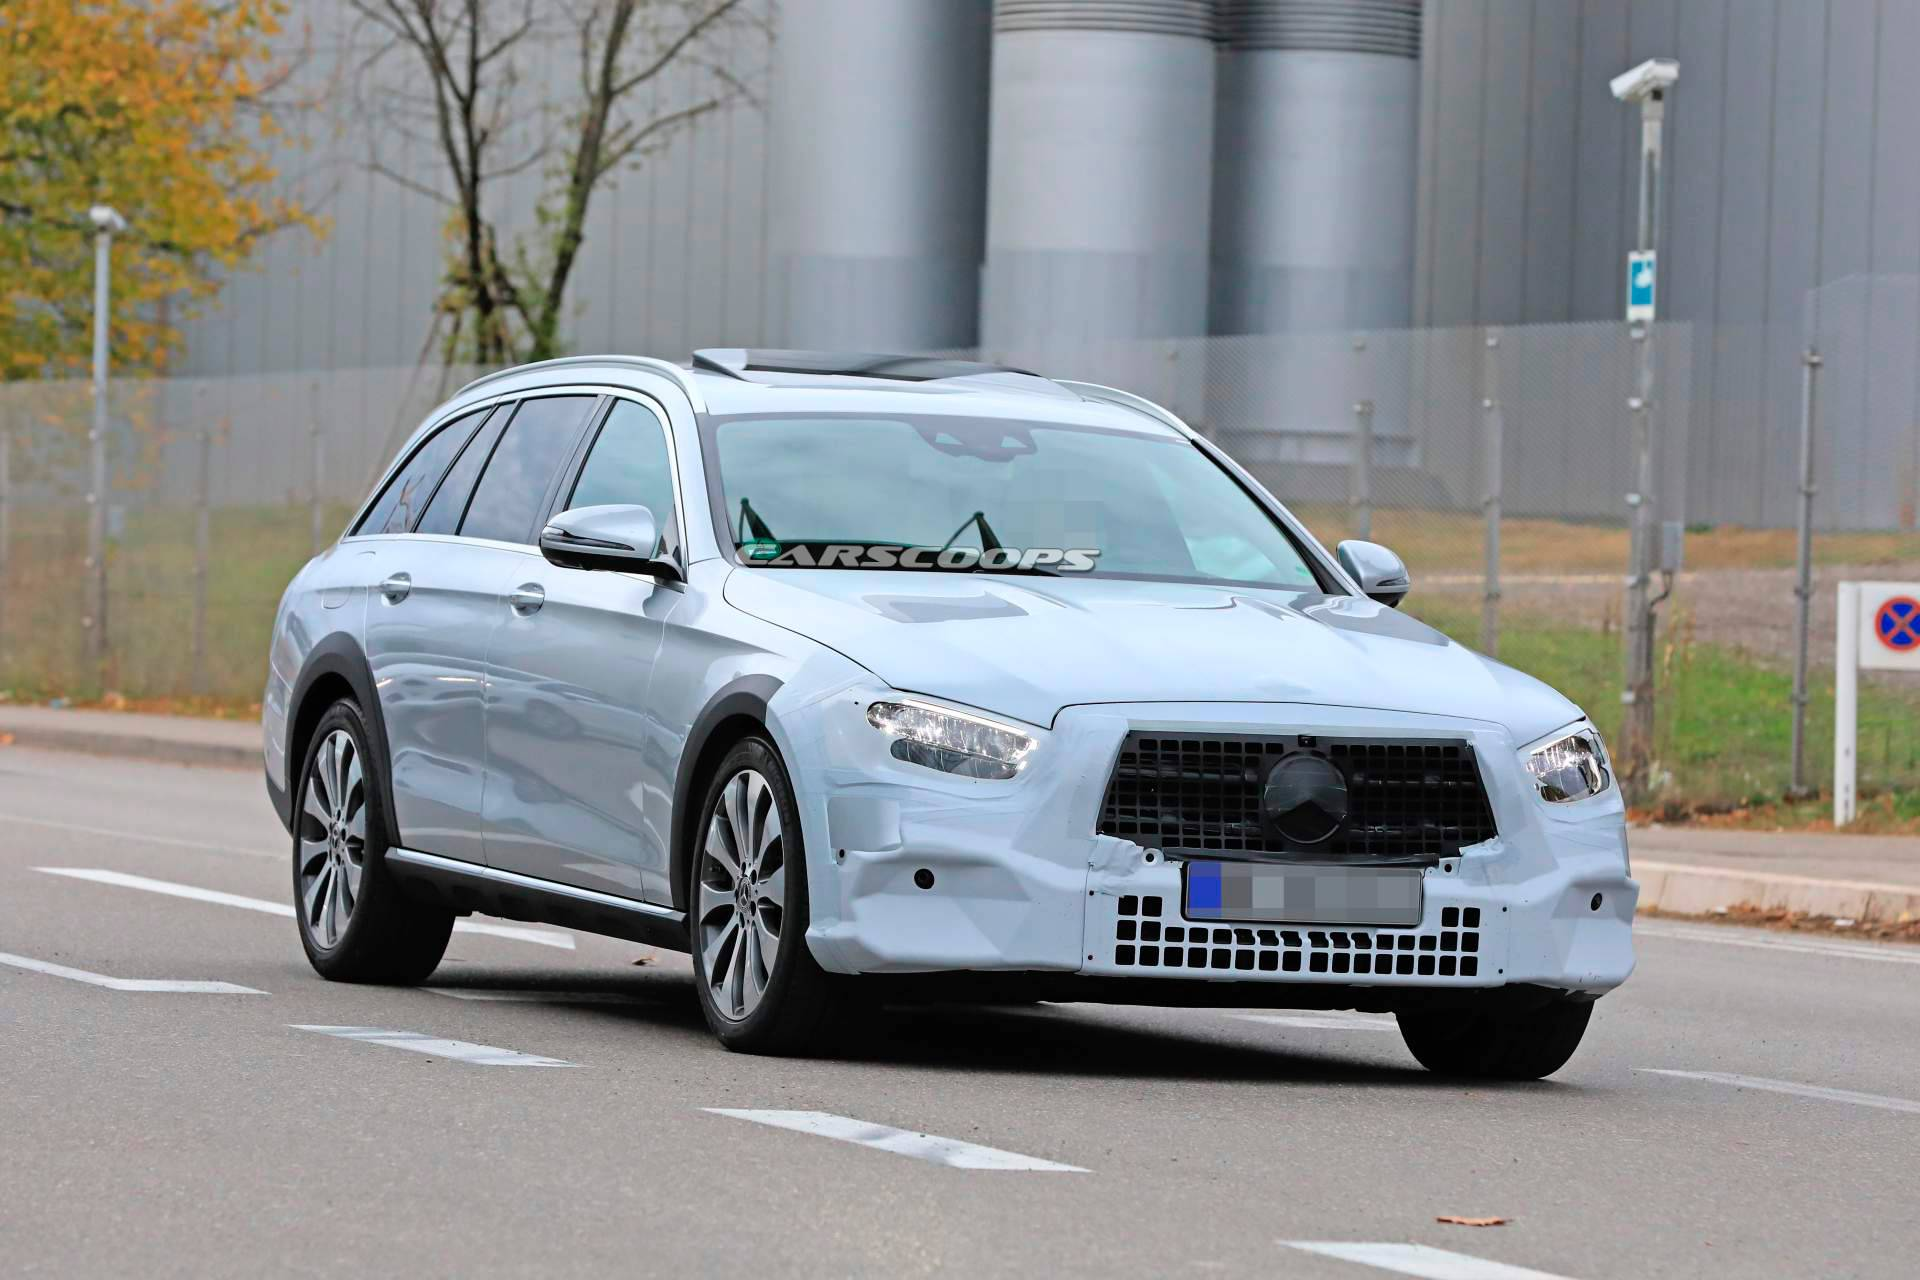 64 All New 2020 The Spy Shots Mercedes E Class Rumors